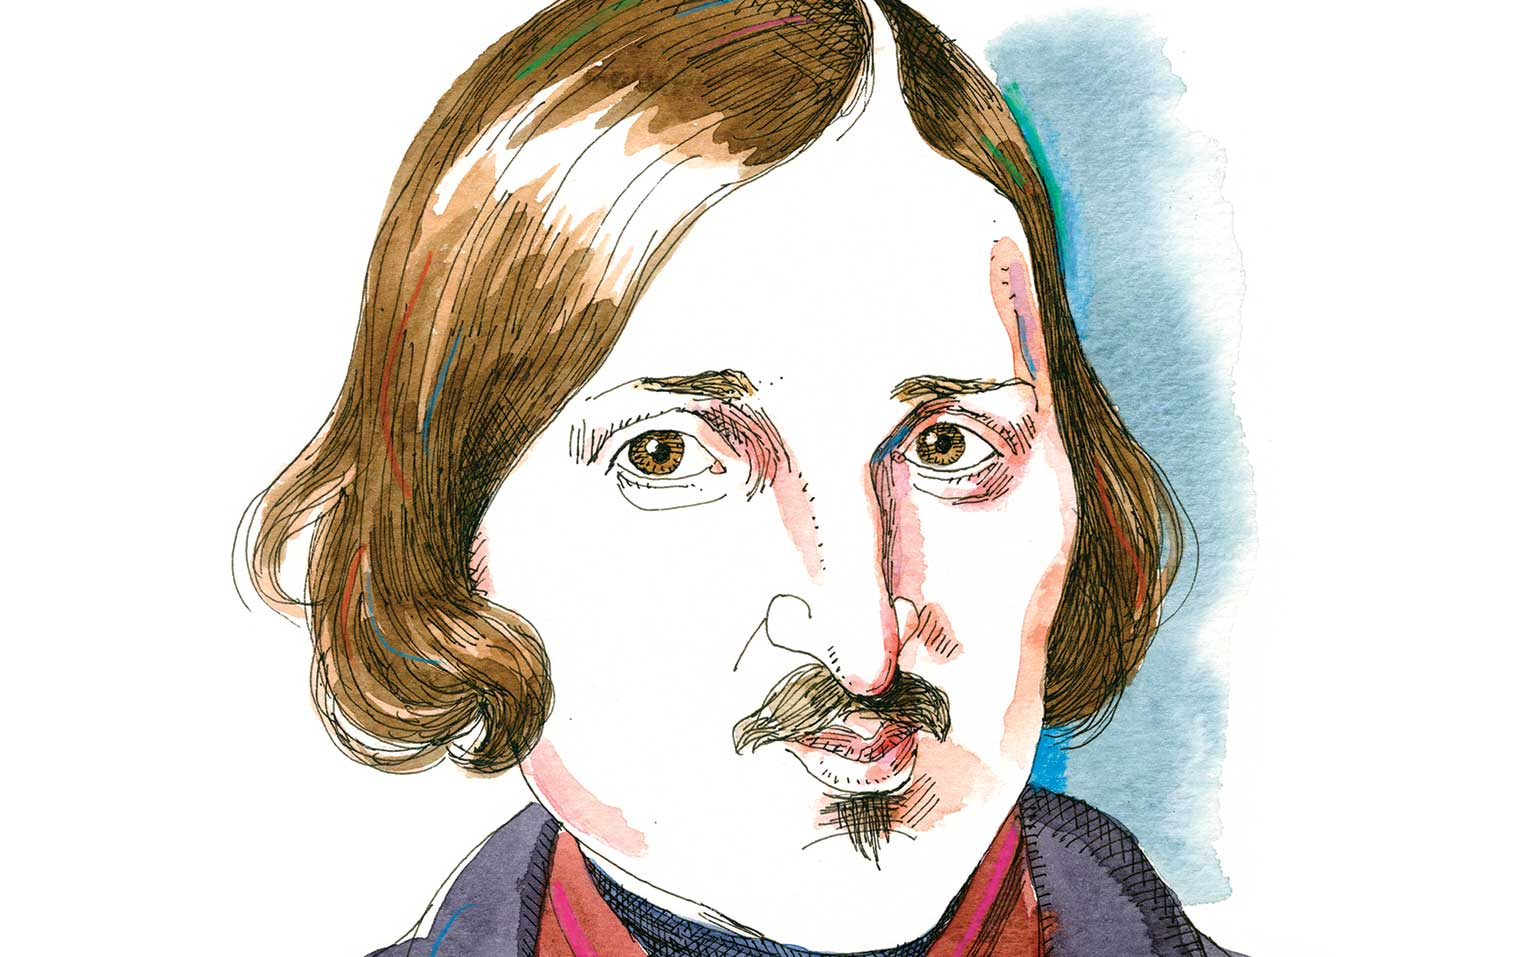 In Peter the Great's Russia, the bureaucracy was all. And no one chronicled its pompous, careerist, status-obsessed types better than <strong>Nikolai Gogol</strong>